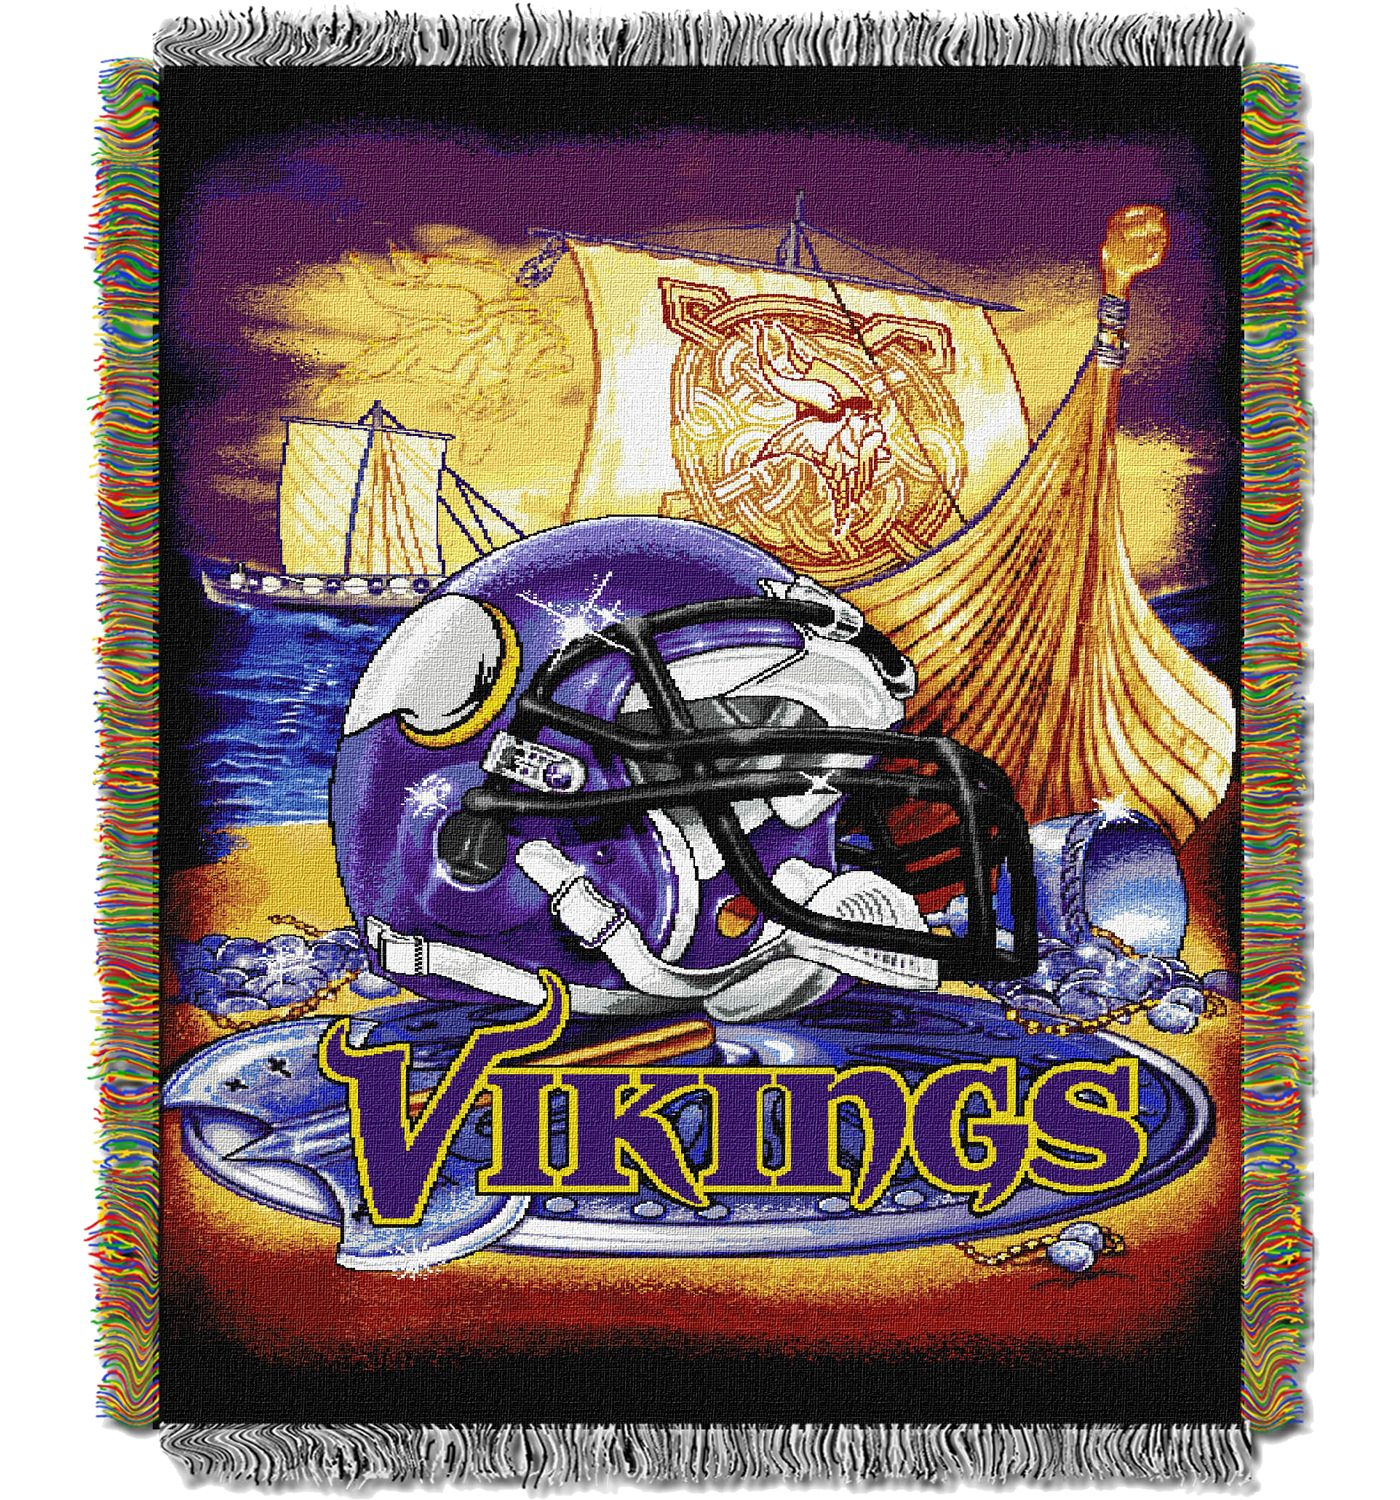 Northwest Minnesota Vikings HFA Blanket